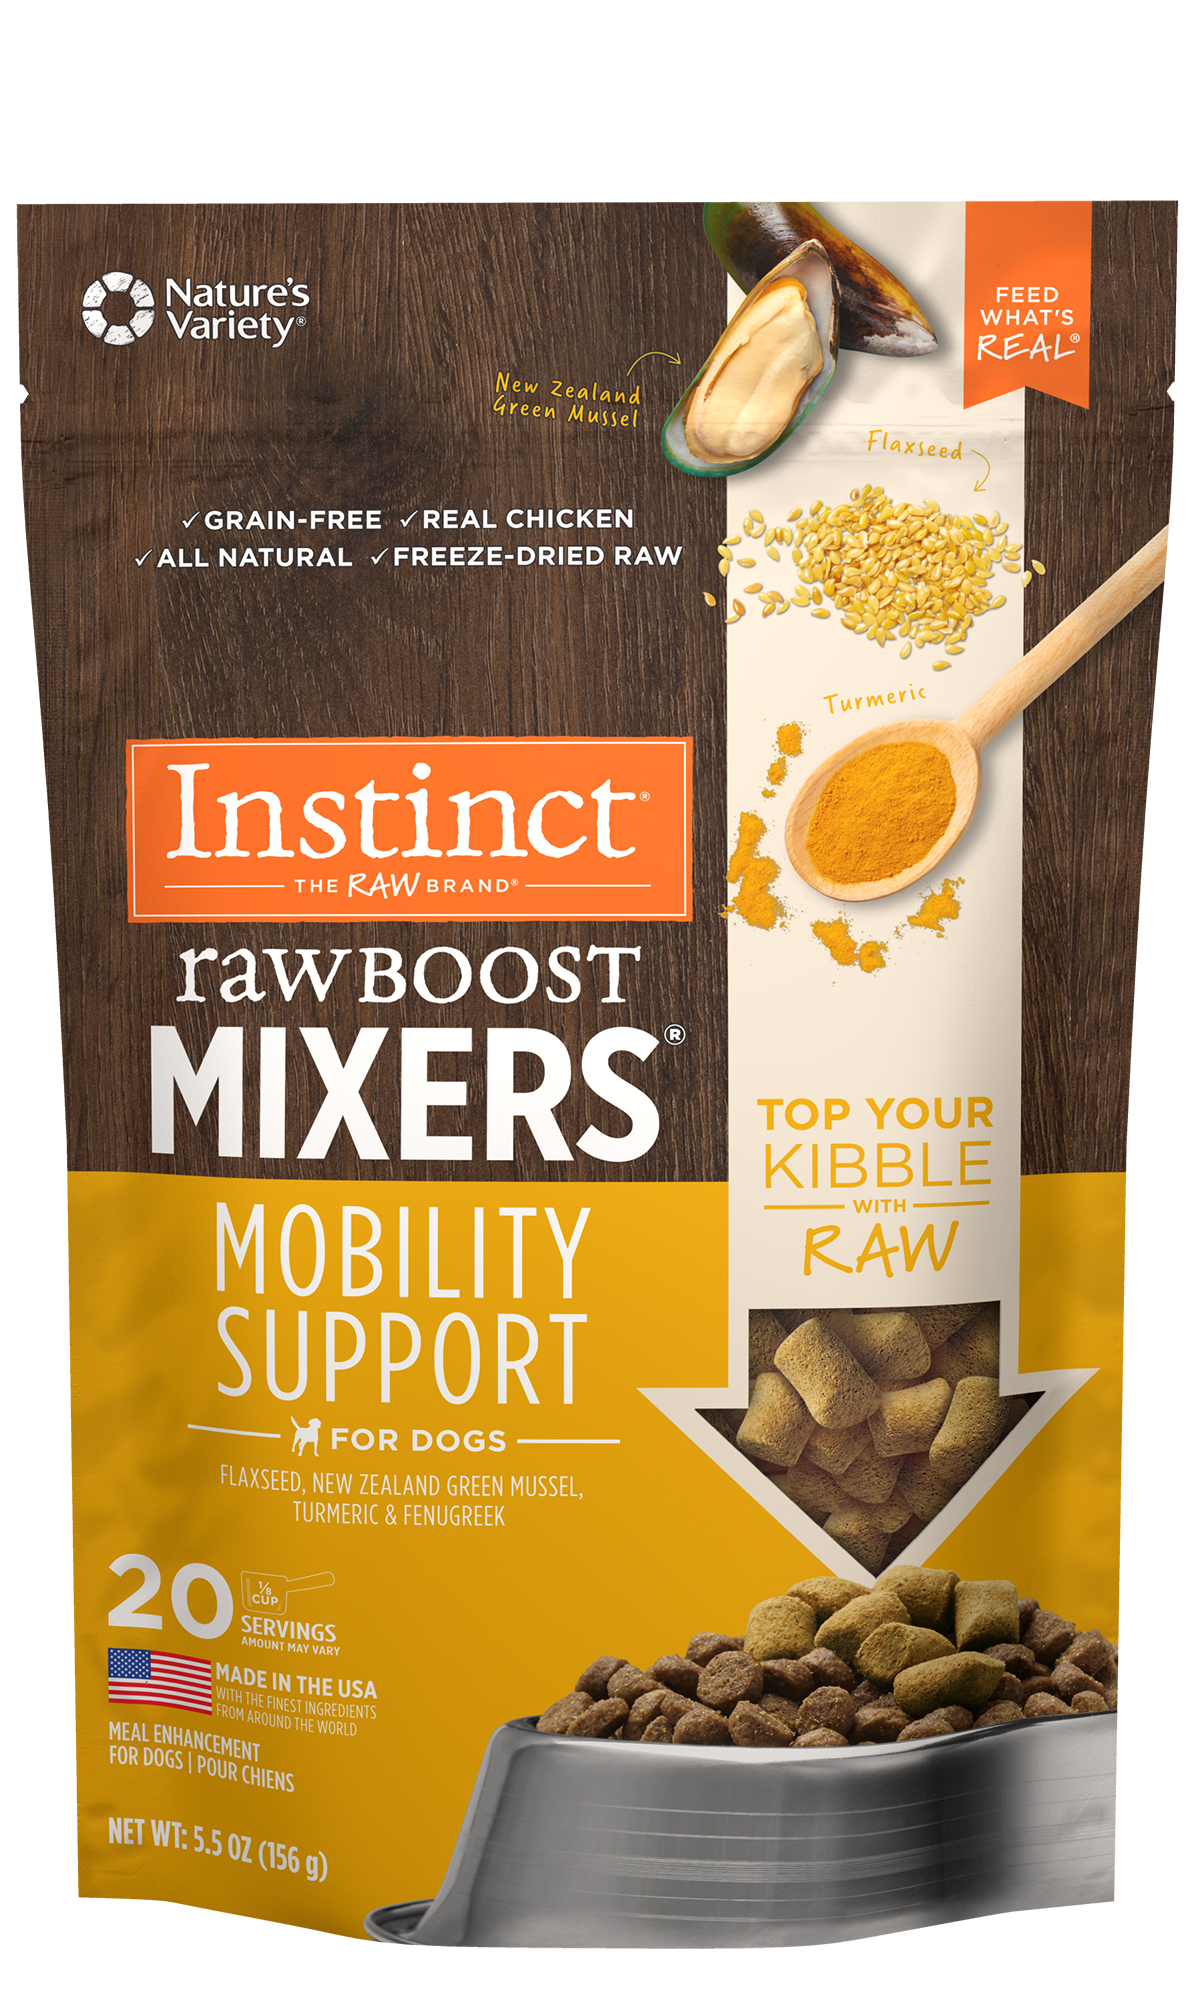 Instinct by Nature's Variety Raw Boost Mixers Mobility Support, 5.5-oz